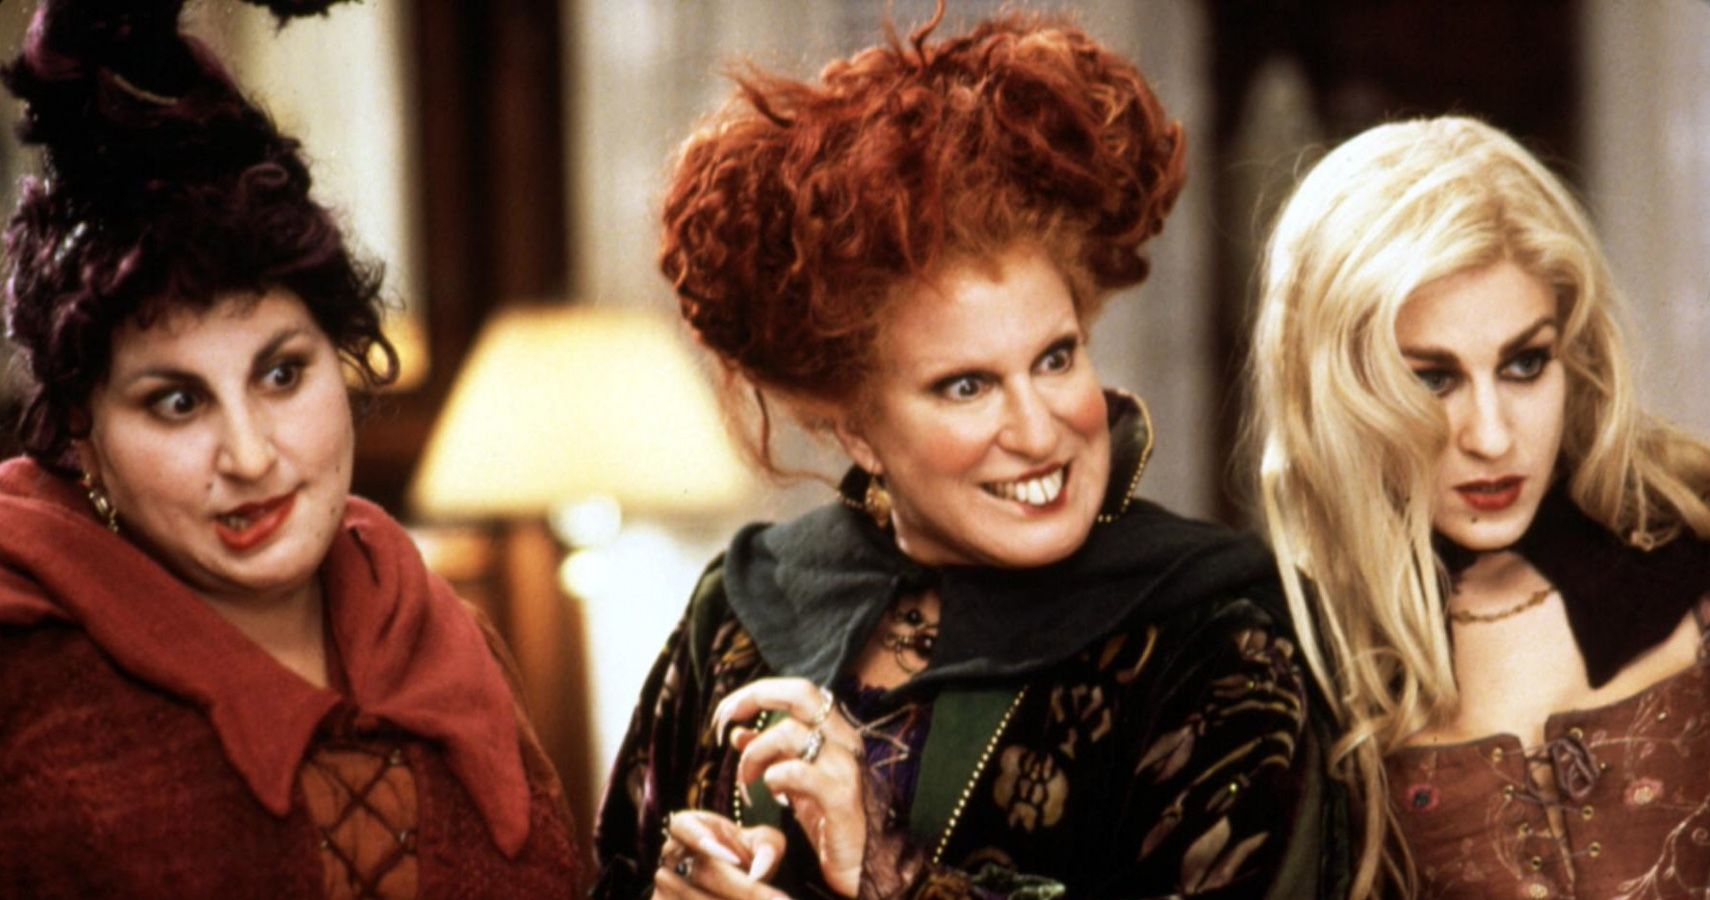 Bette Midler Spills The Secrets Behind The 'Hocus Pocus' Reunion